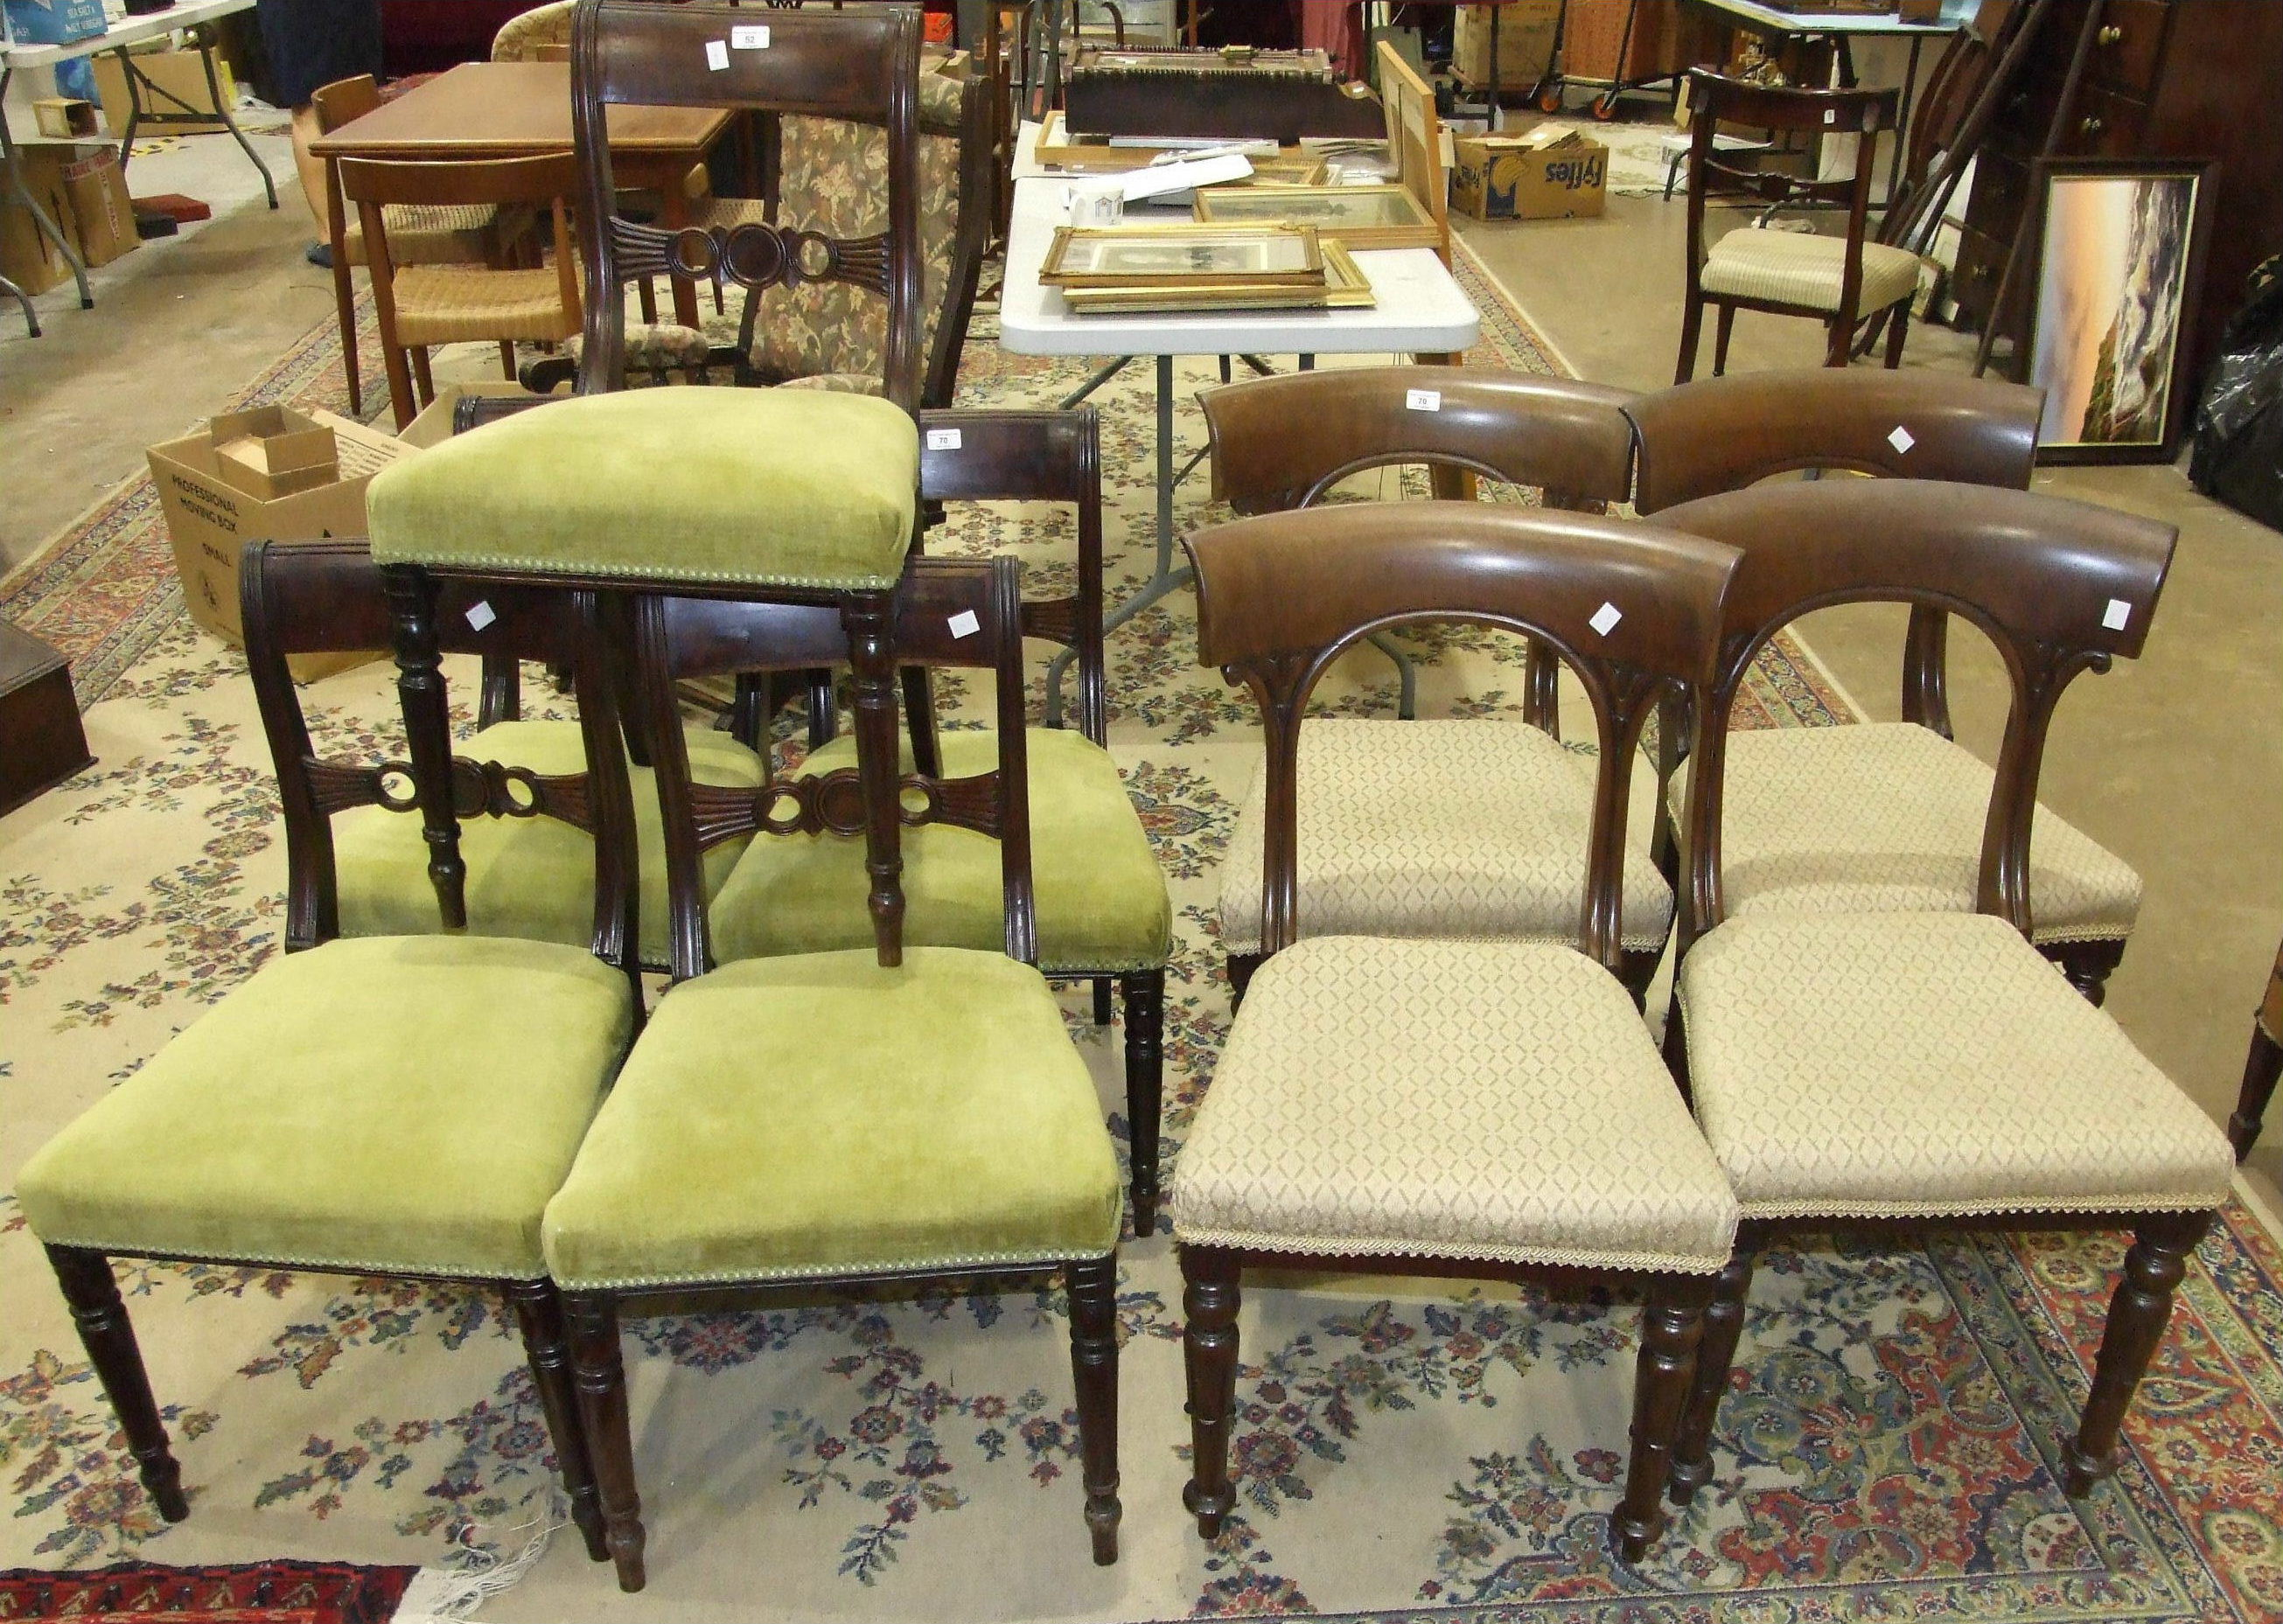 A set of four early-Victorian mahogany dining chairs, with curved top rails and open backs, also